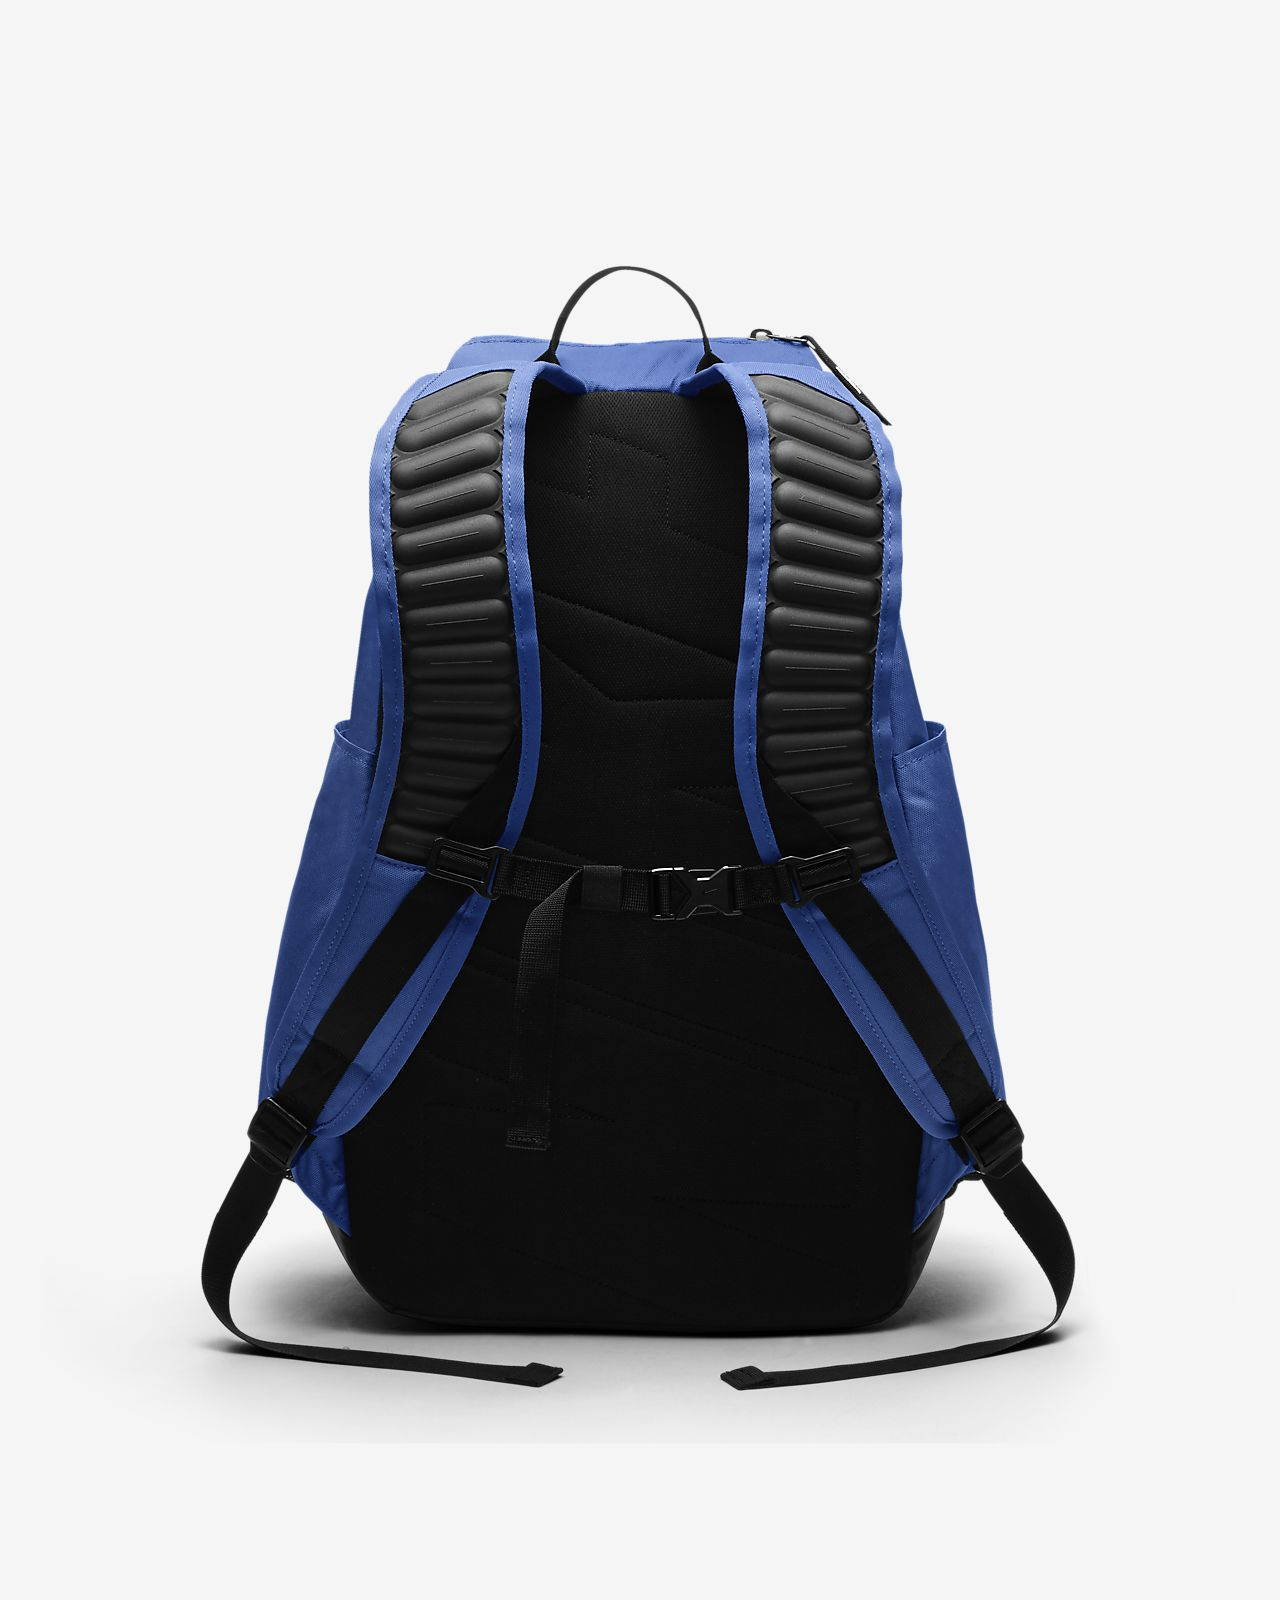 nike bags in the philippines cheap   OFF58% The Largest Catalog Discounts 3735a6da6c5b